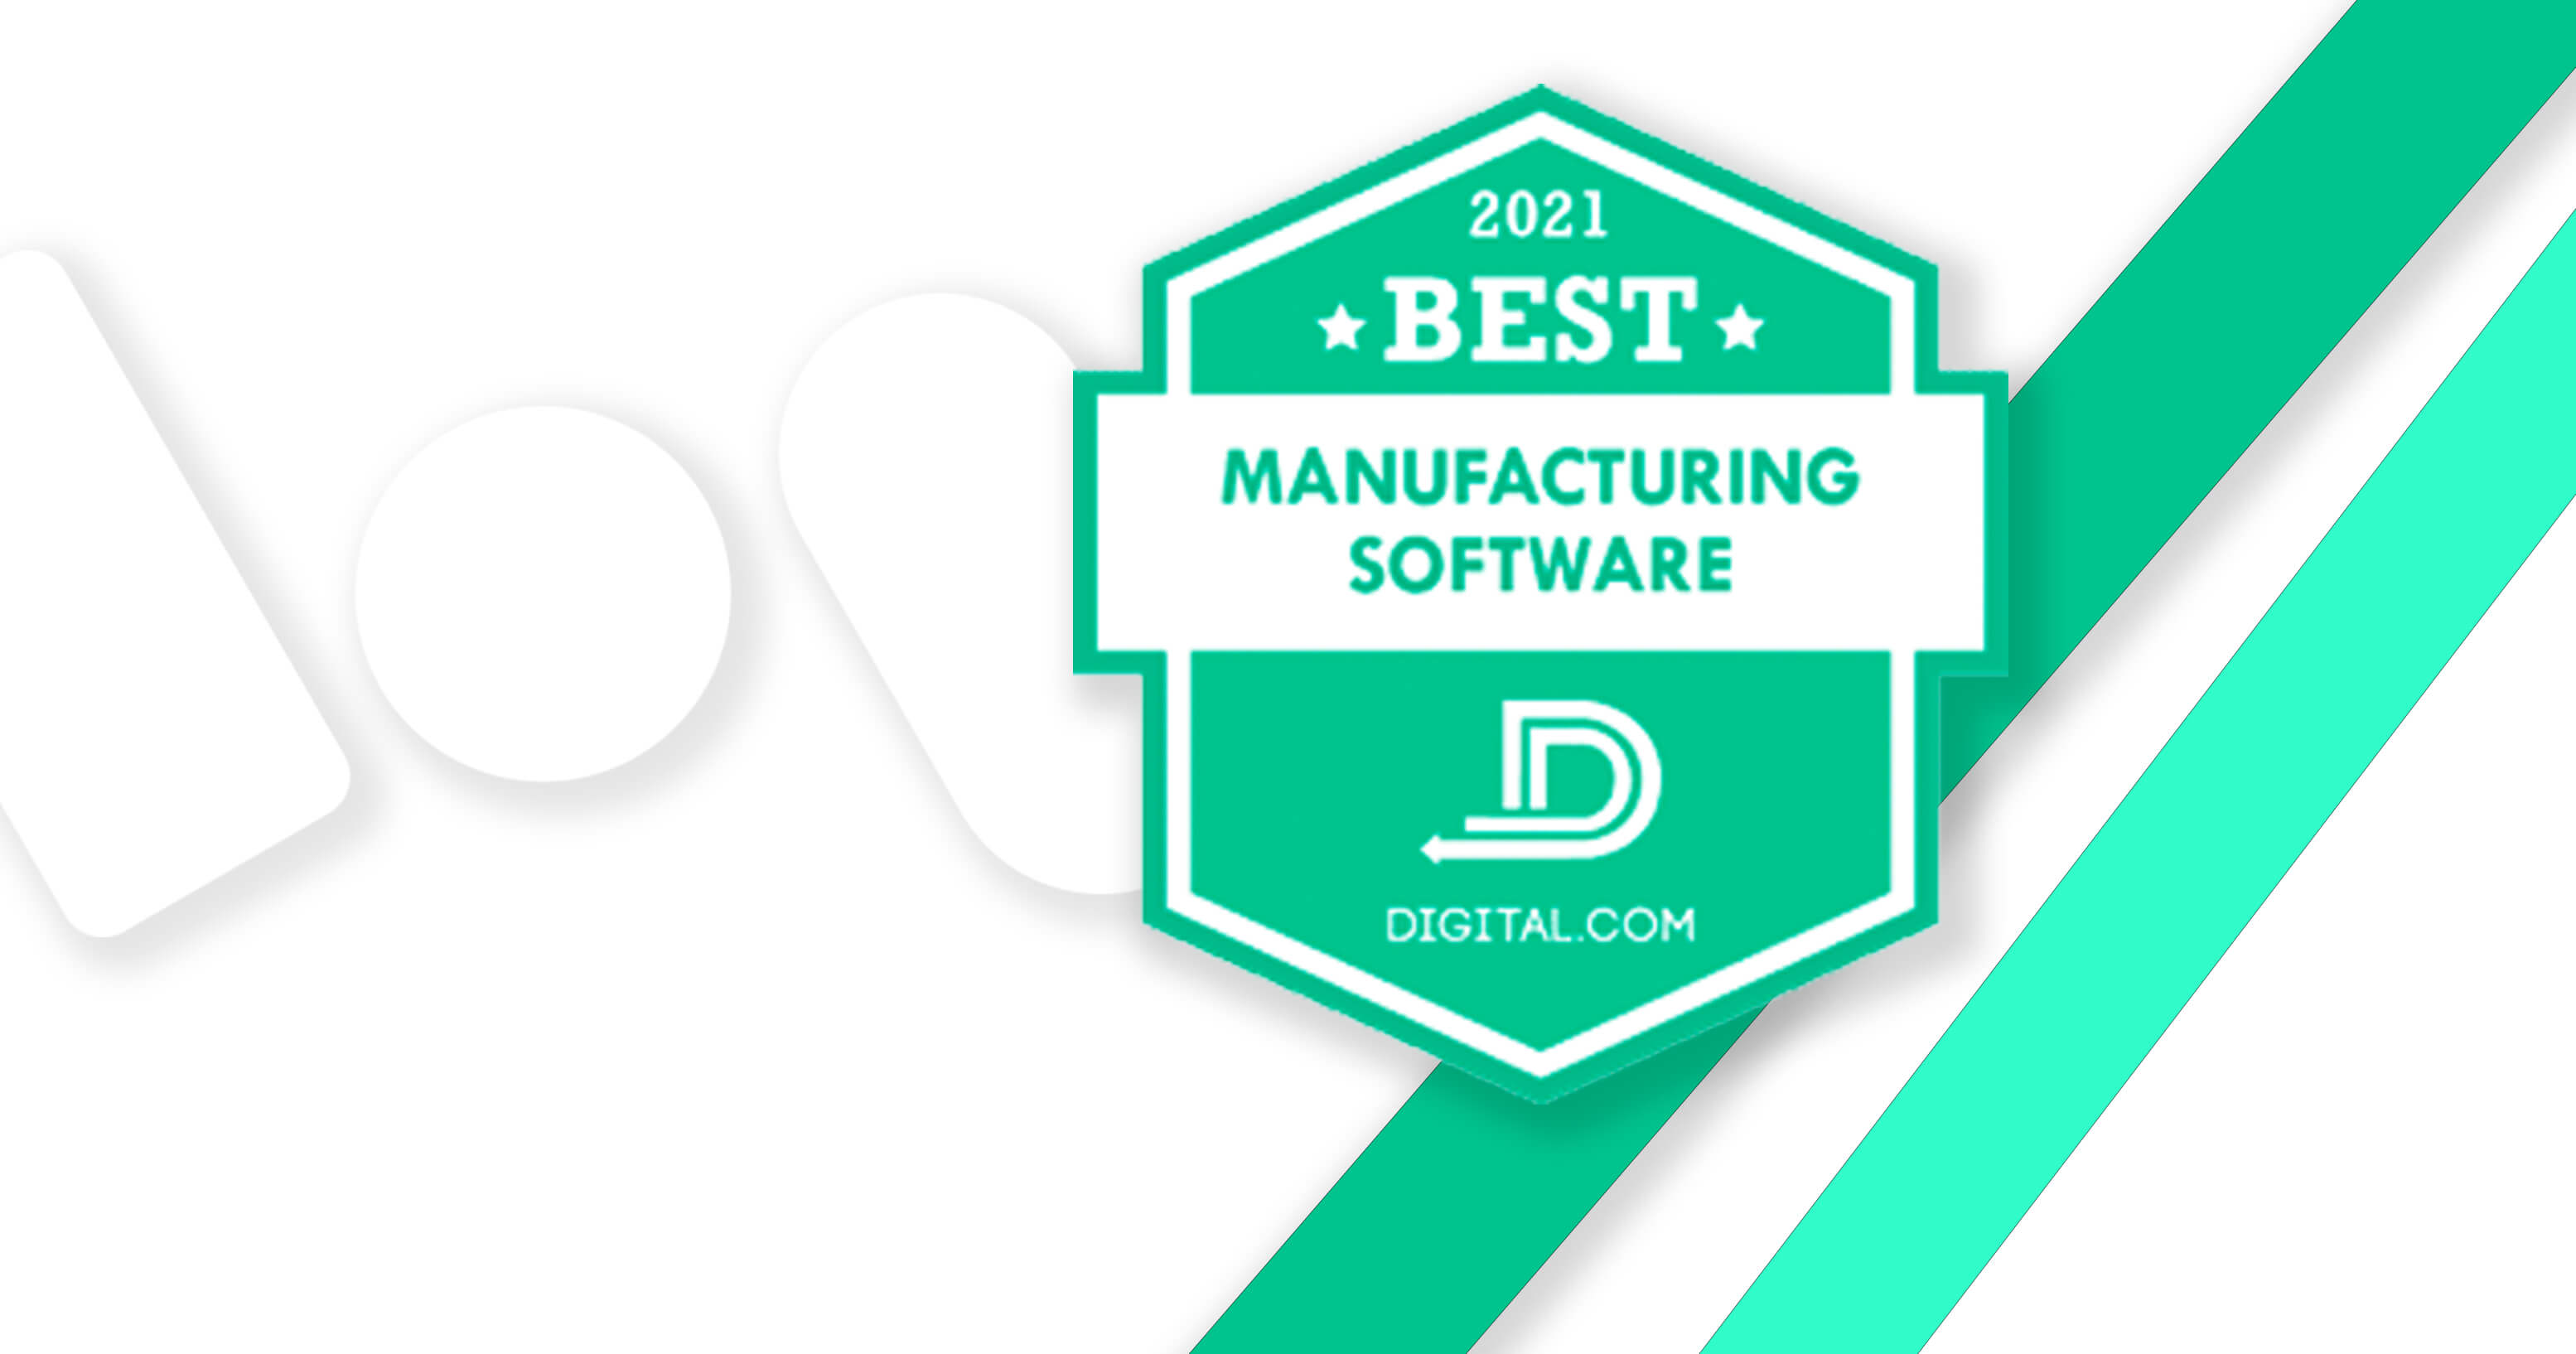 WorkClout named Best Manufacturing Software 2021 by Digital.com